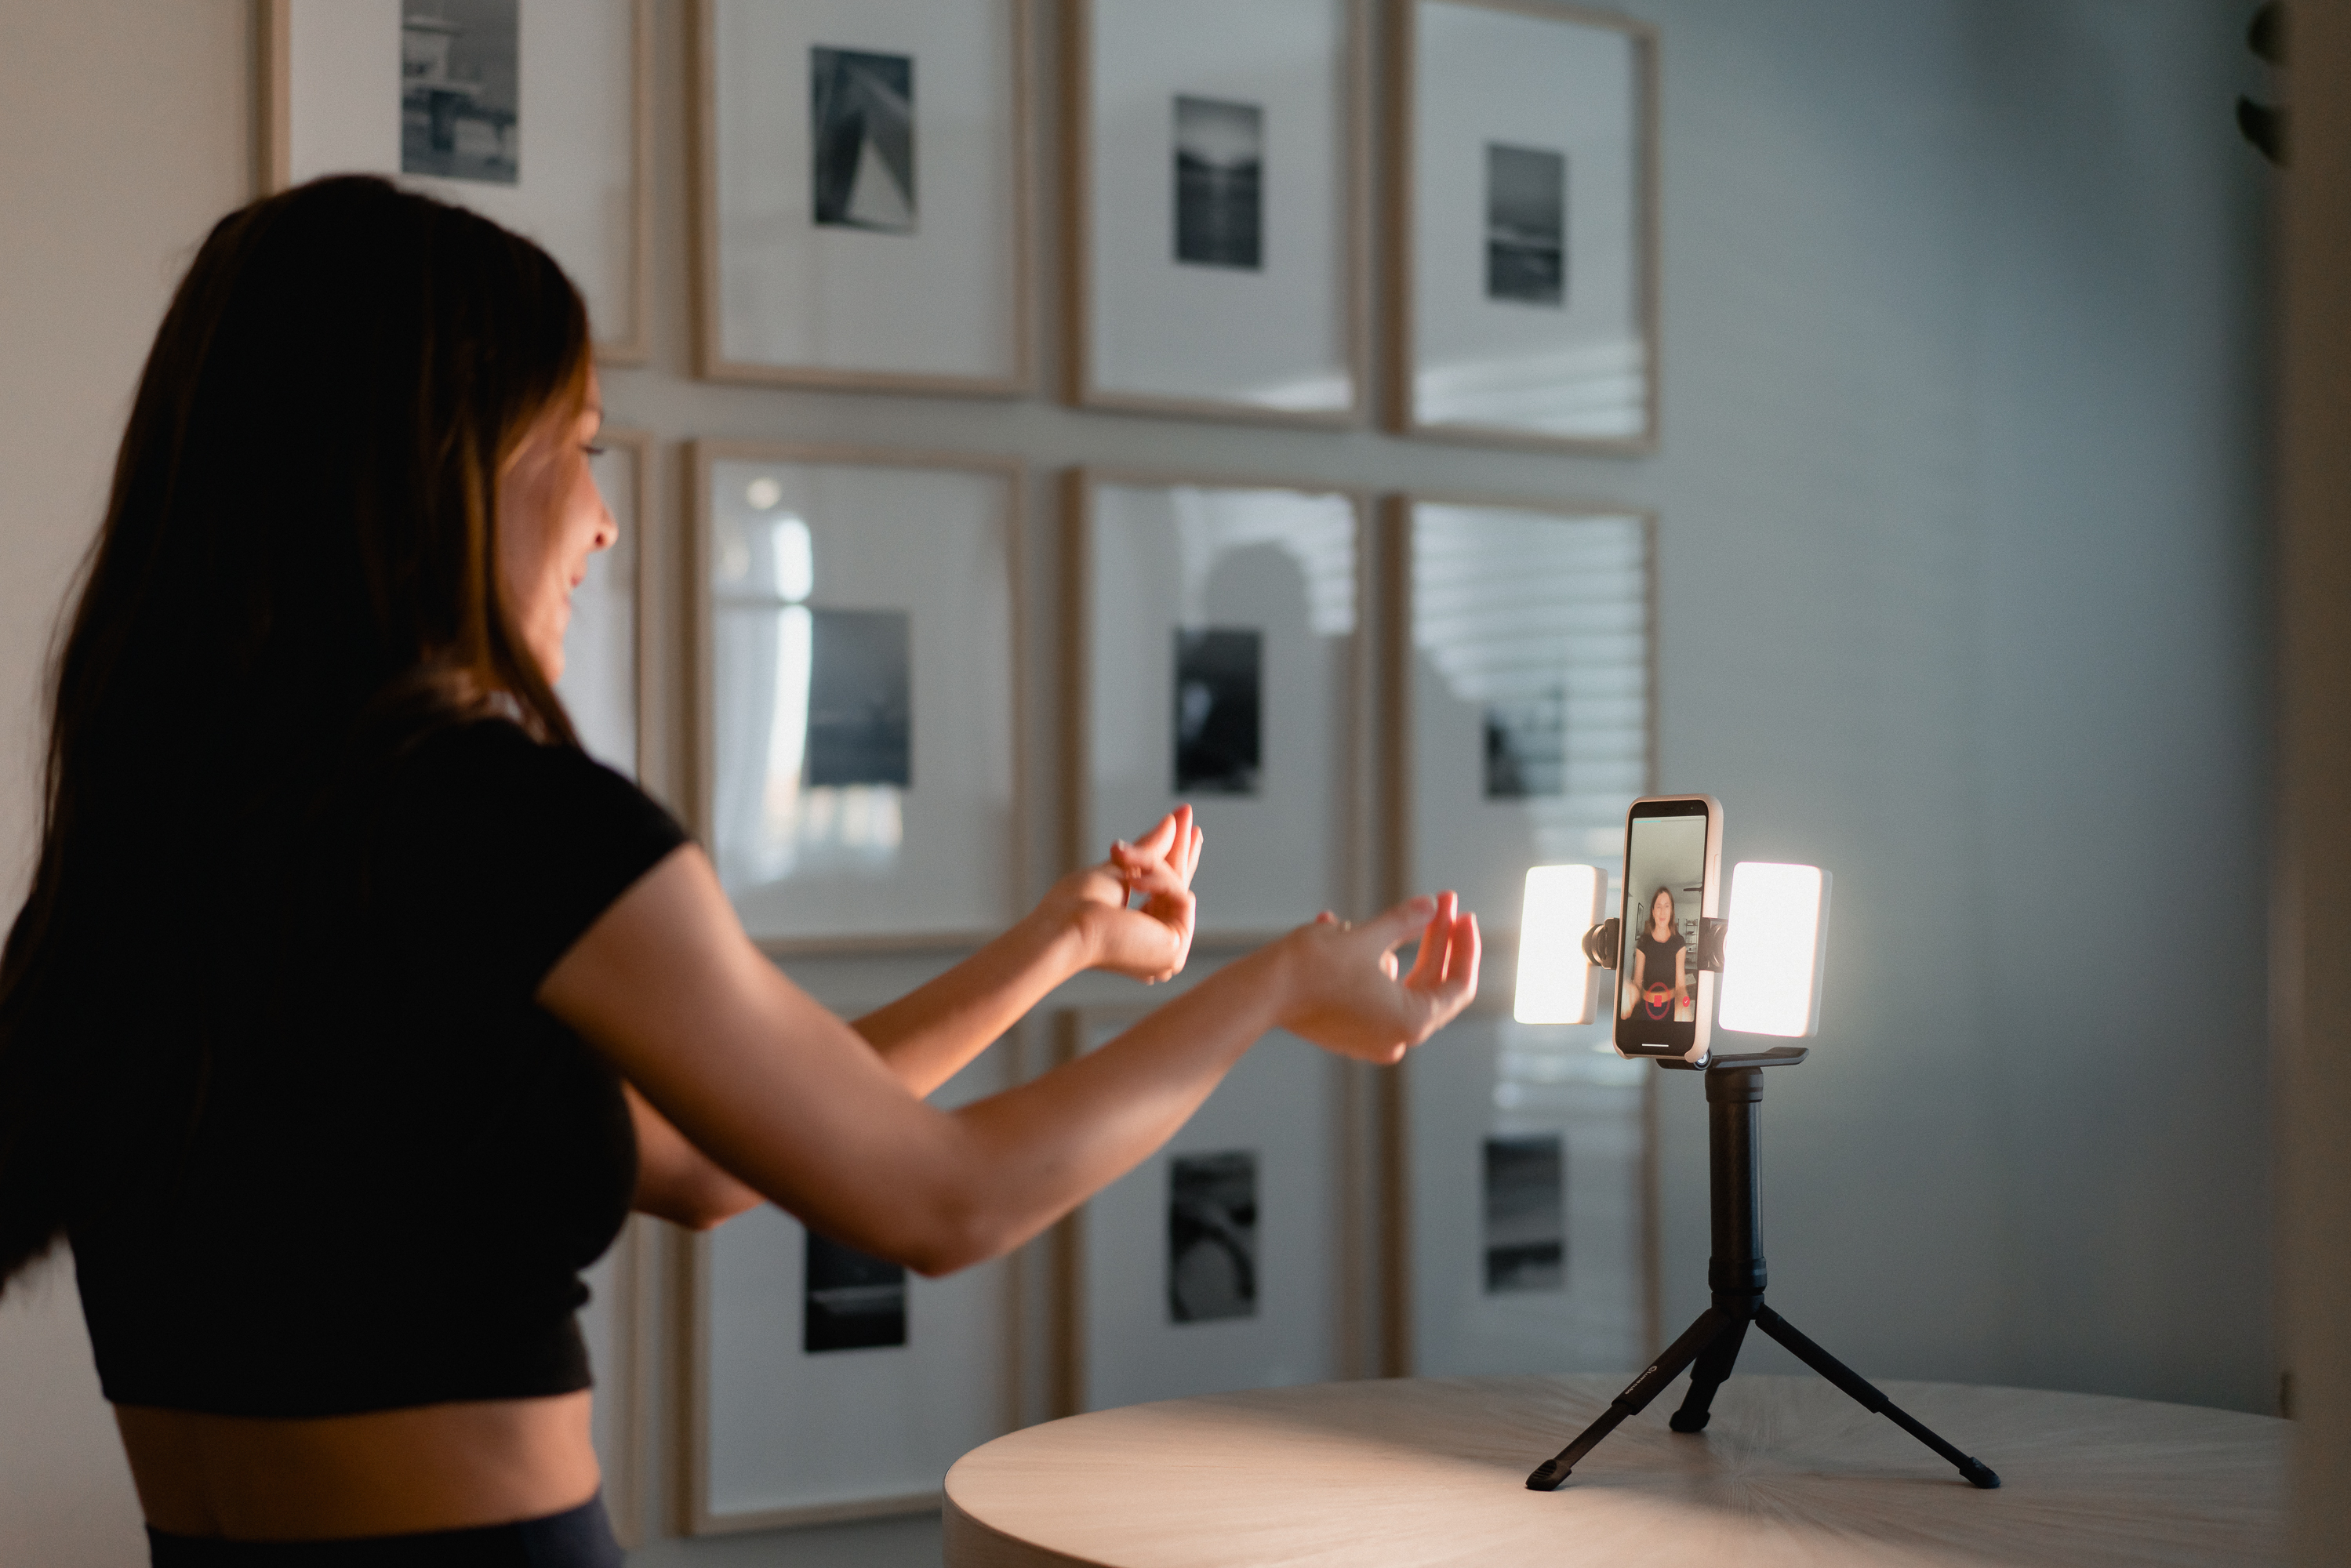 girl dancing with mobile creator kit placed on table